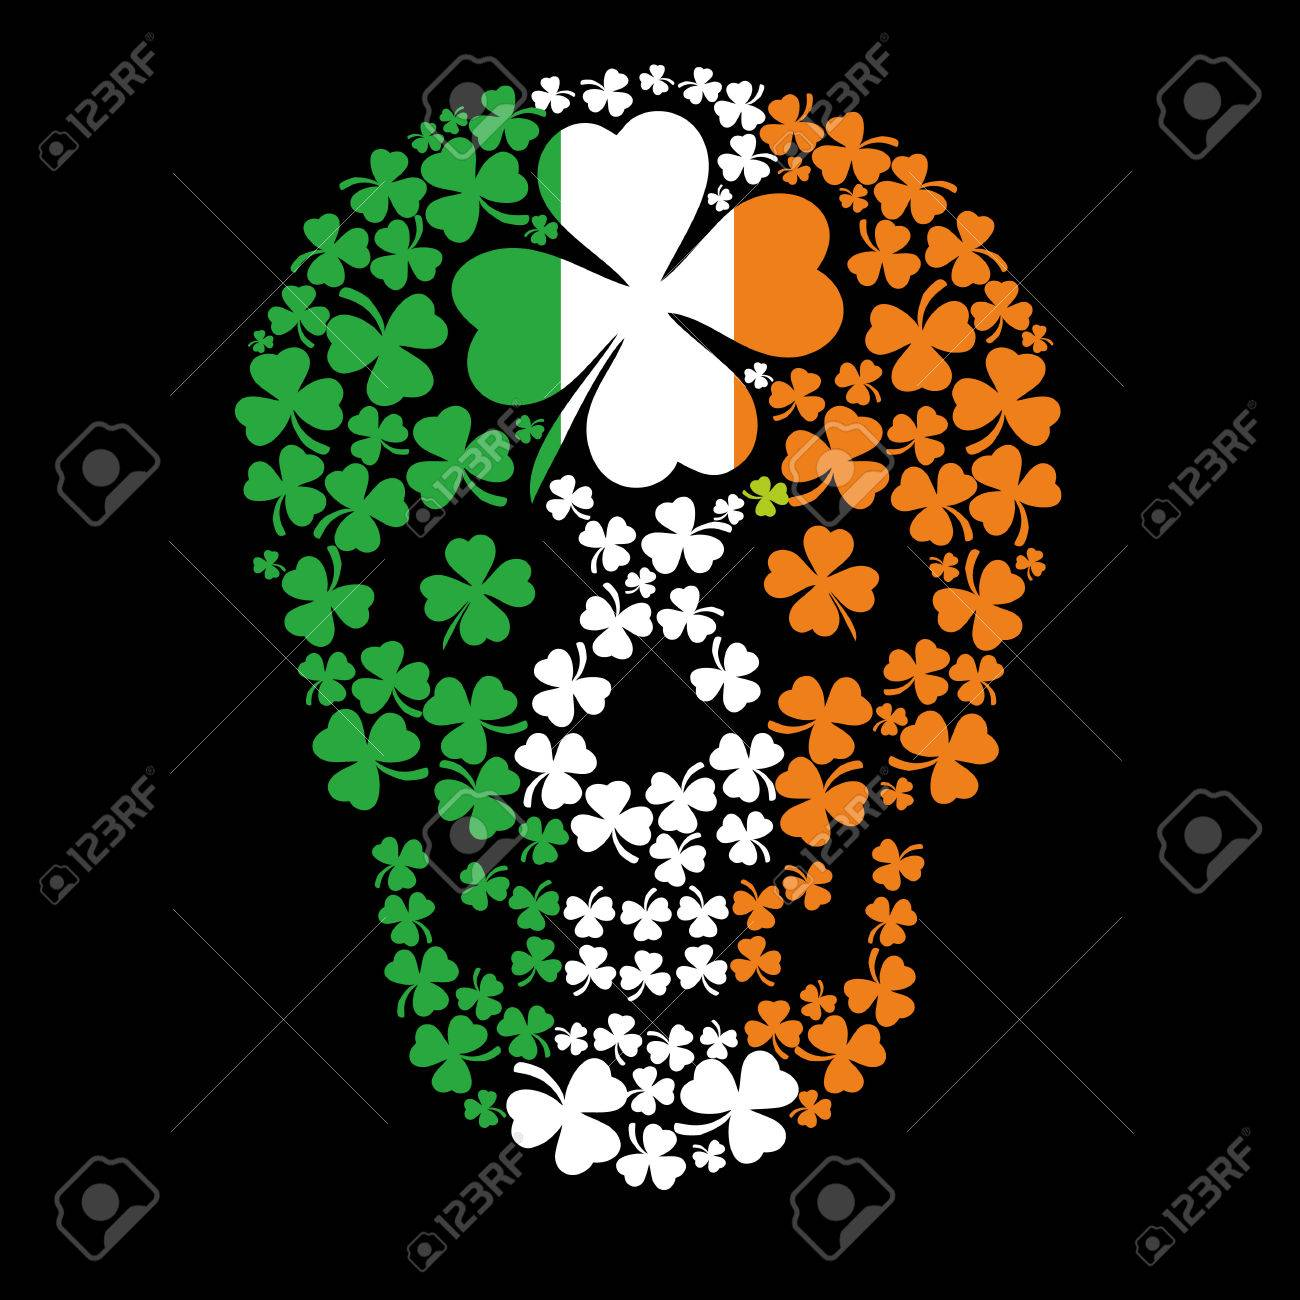 Irish coat of arms with skull and clover grunge vintage design irish coat of arms with skull and clover grunge vintage design t shirts stock vector buycottarizona Images